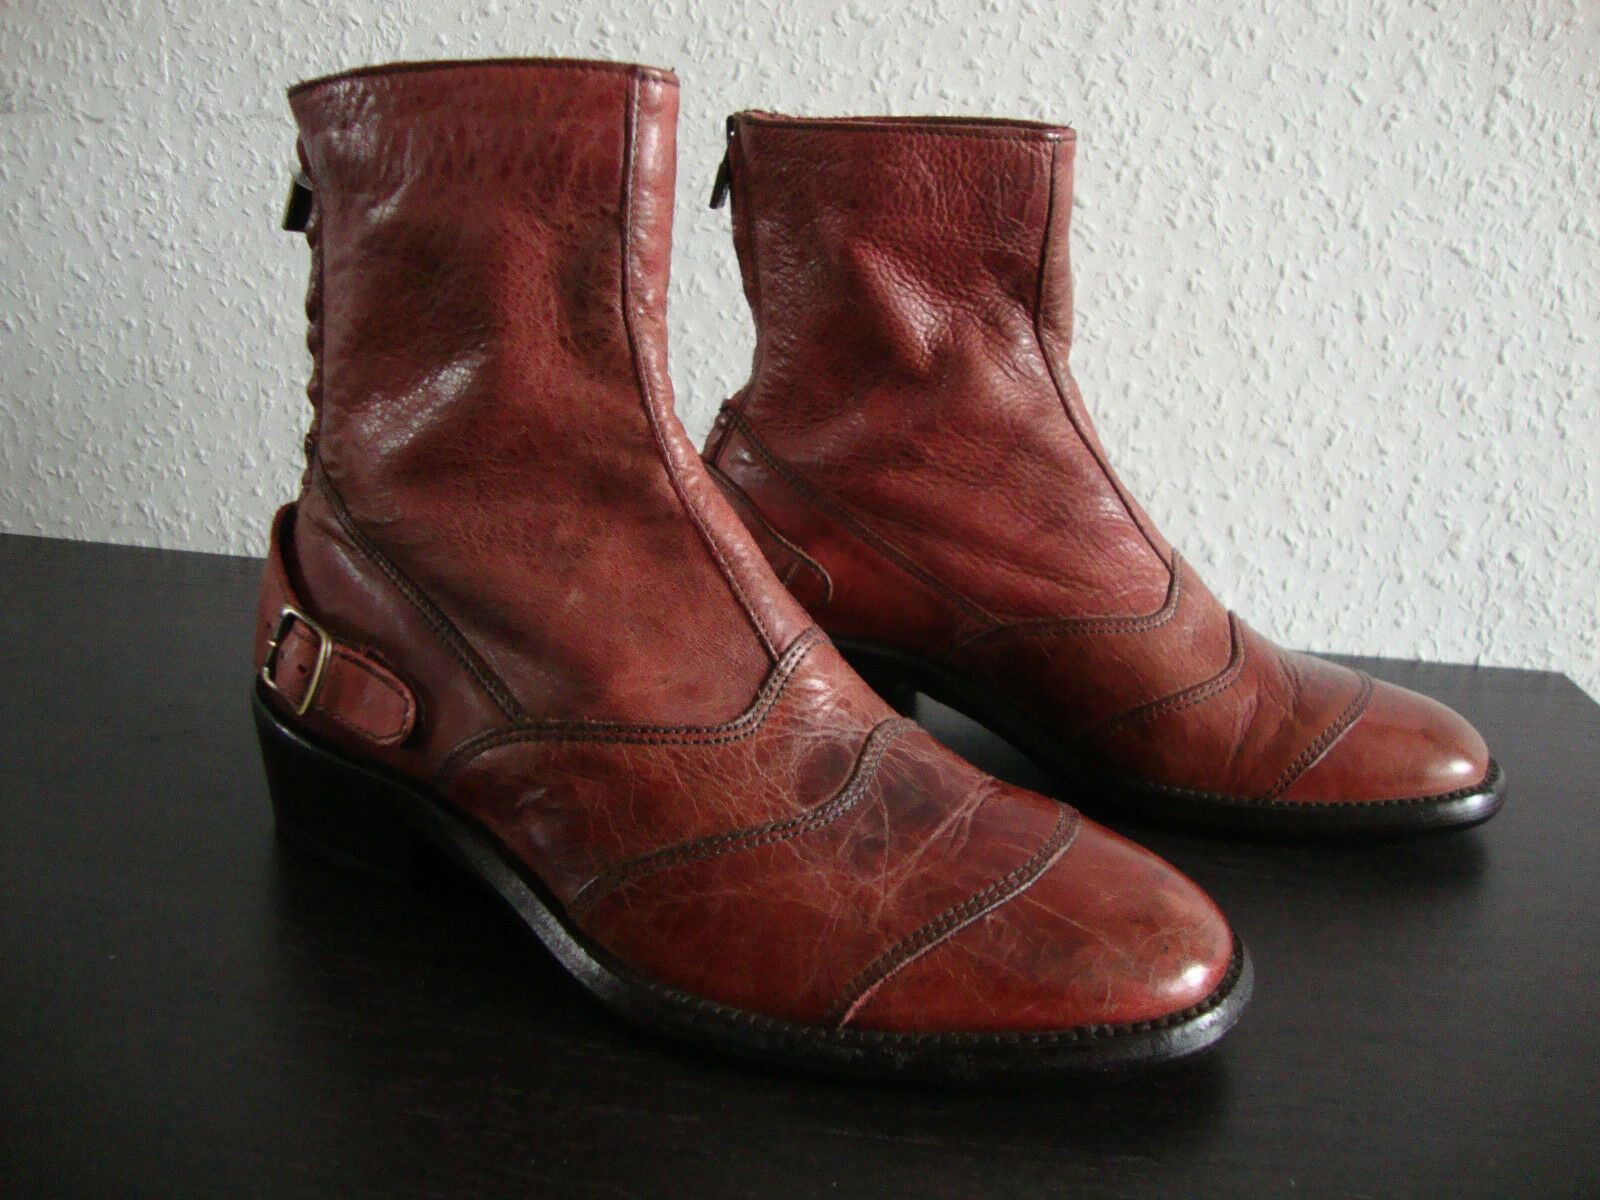 BELSTAFF TRIALMASTER LADY ANTIQUE ANTIQUE ANTIQUE rot Stiefelette Damen Stiefel Schuhe Gr.37 NEU ad4a1a